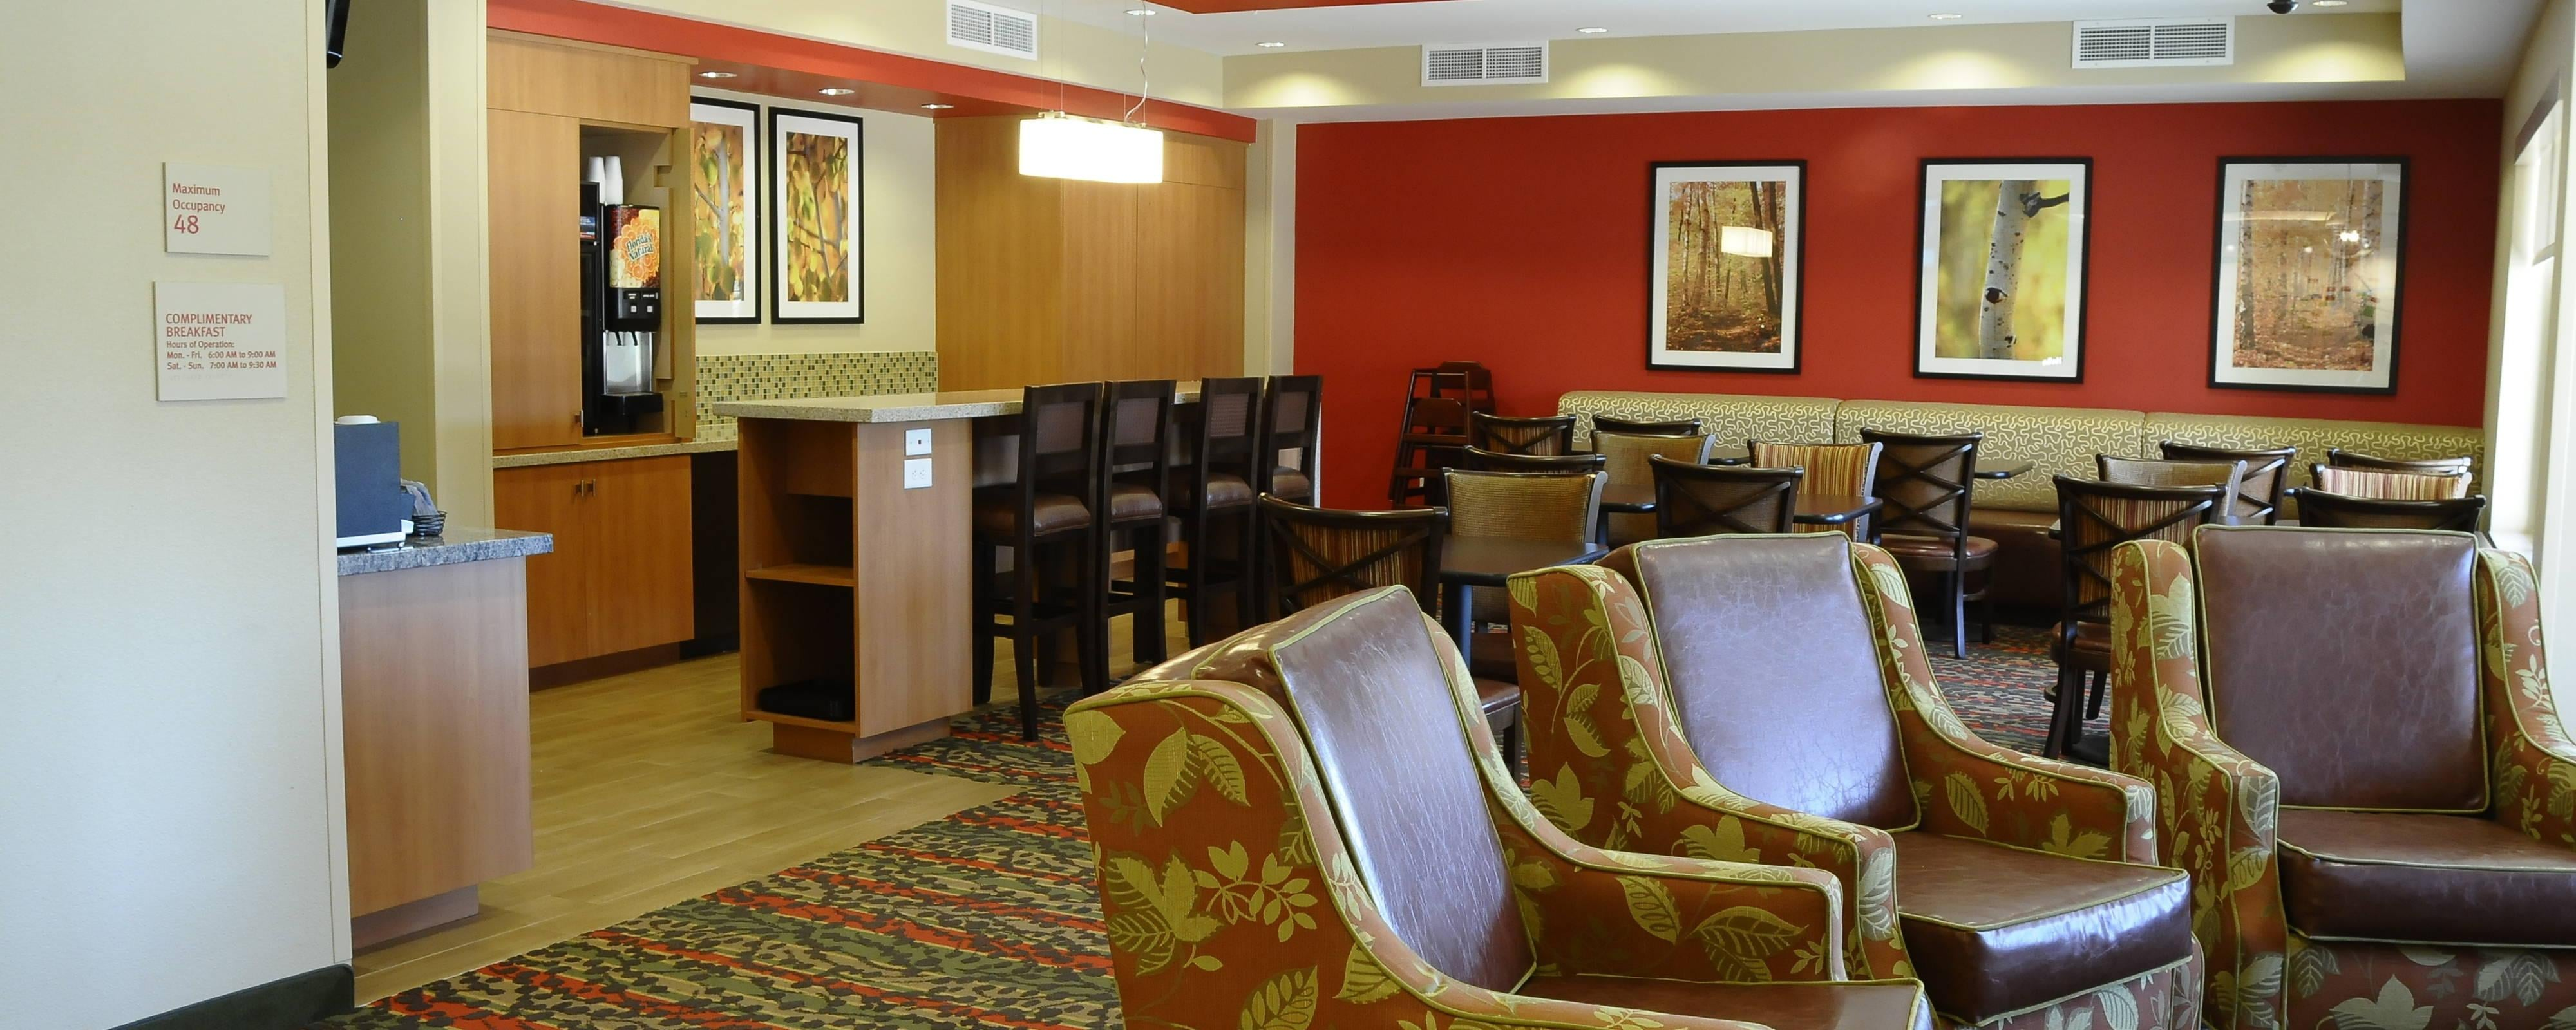 Redding hotel restaurants | TownePlace Suites Redding Dining ...